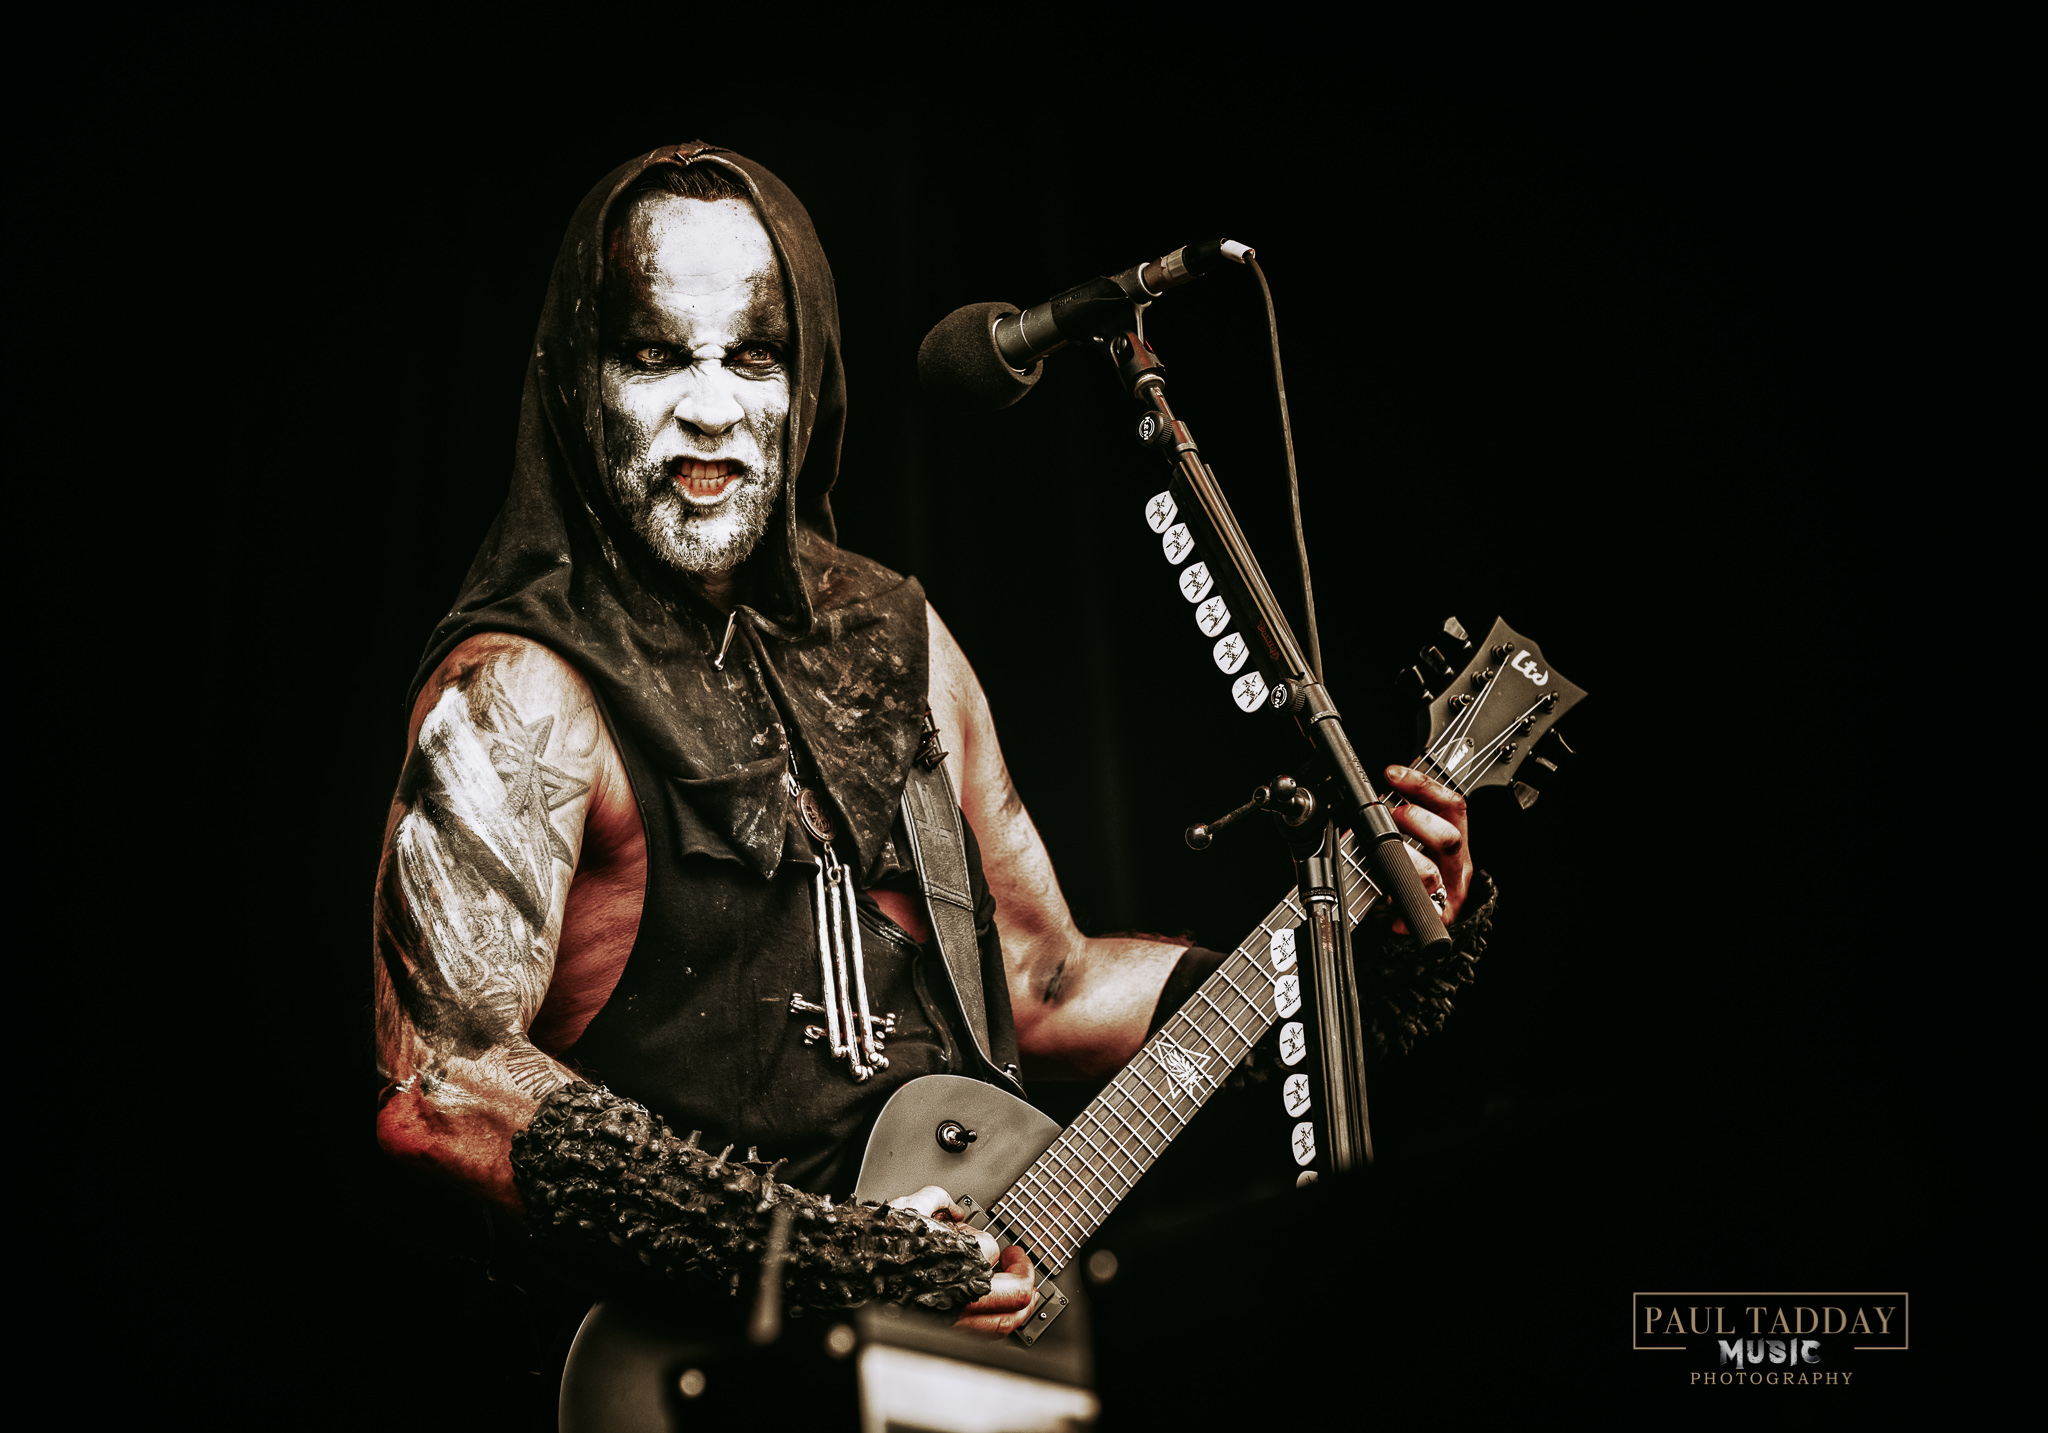 behemoth - download melbourne - march 2019 - web - paul tadday photography - 16.jpg